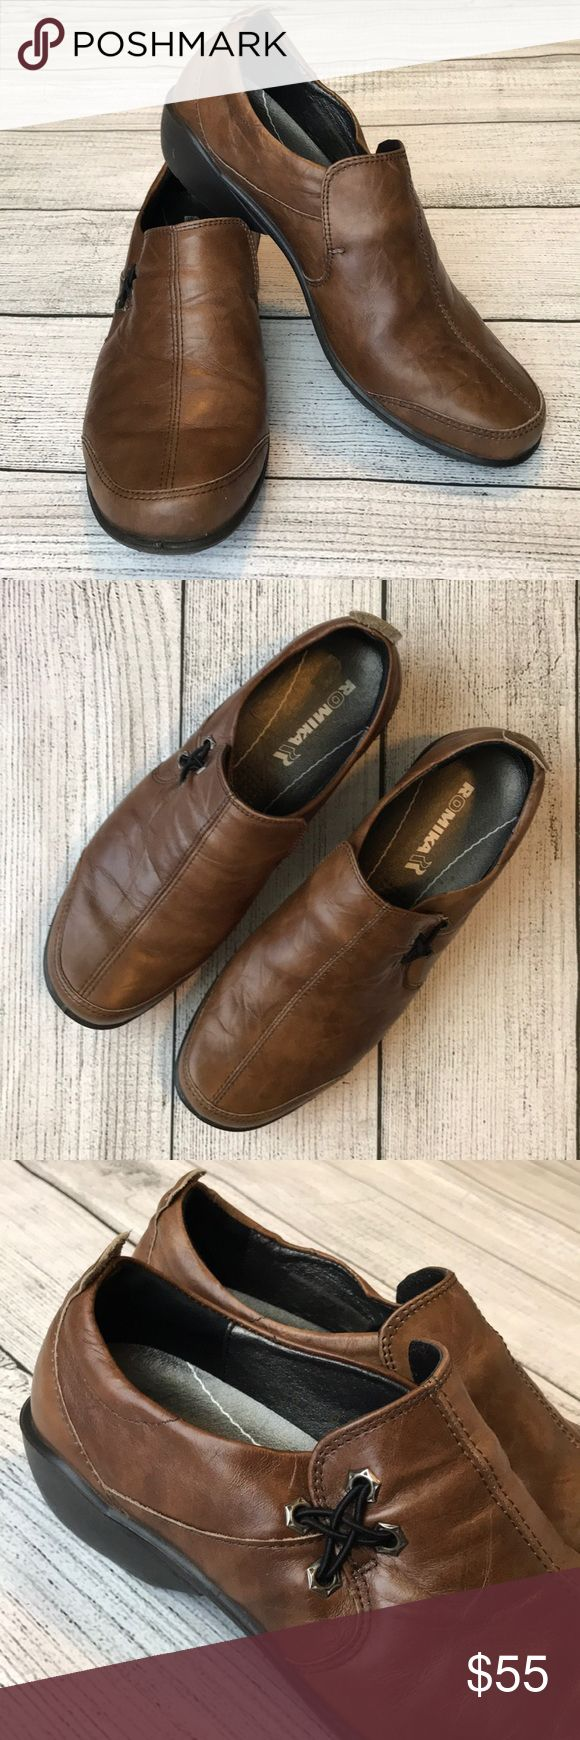 Romika leather shoes Brow leather Romika shoes. Size 39. Romika Shoes